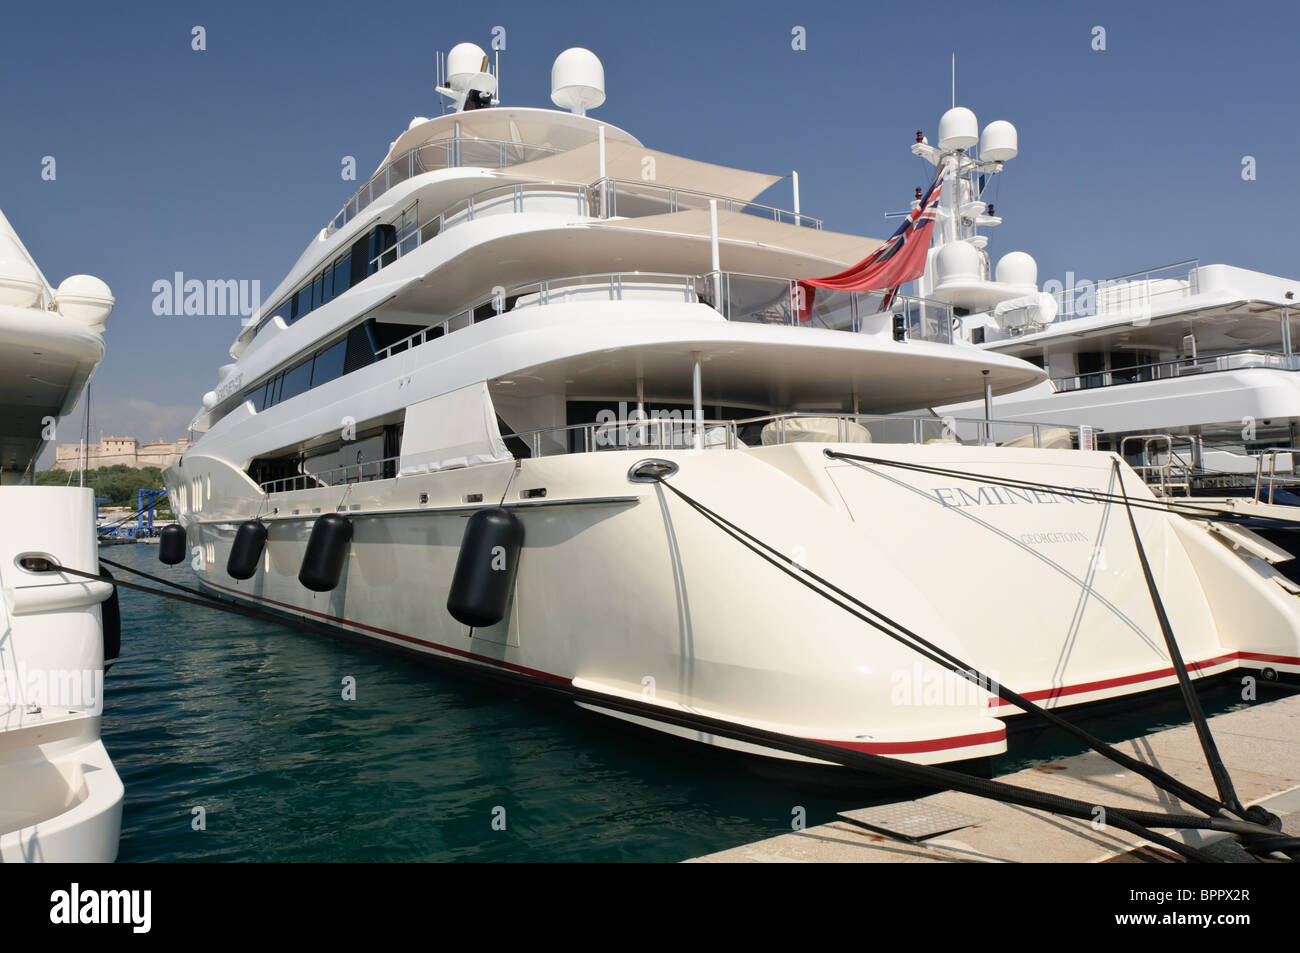 Superyacht 'Eminence' moored at the marina in Antibes, France - Stock Image